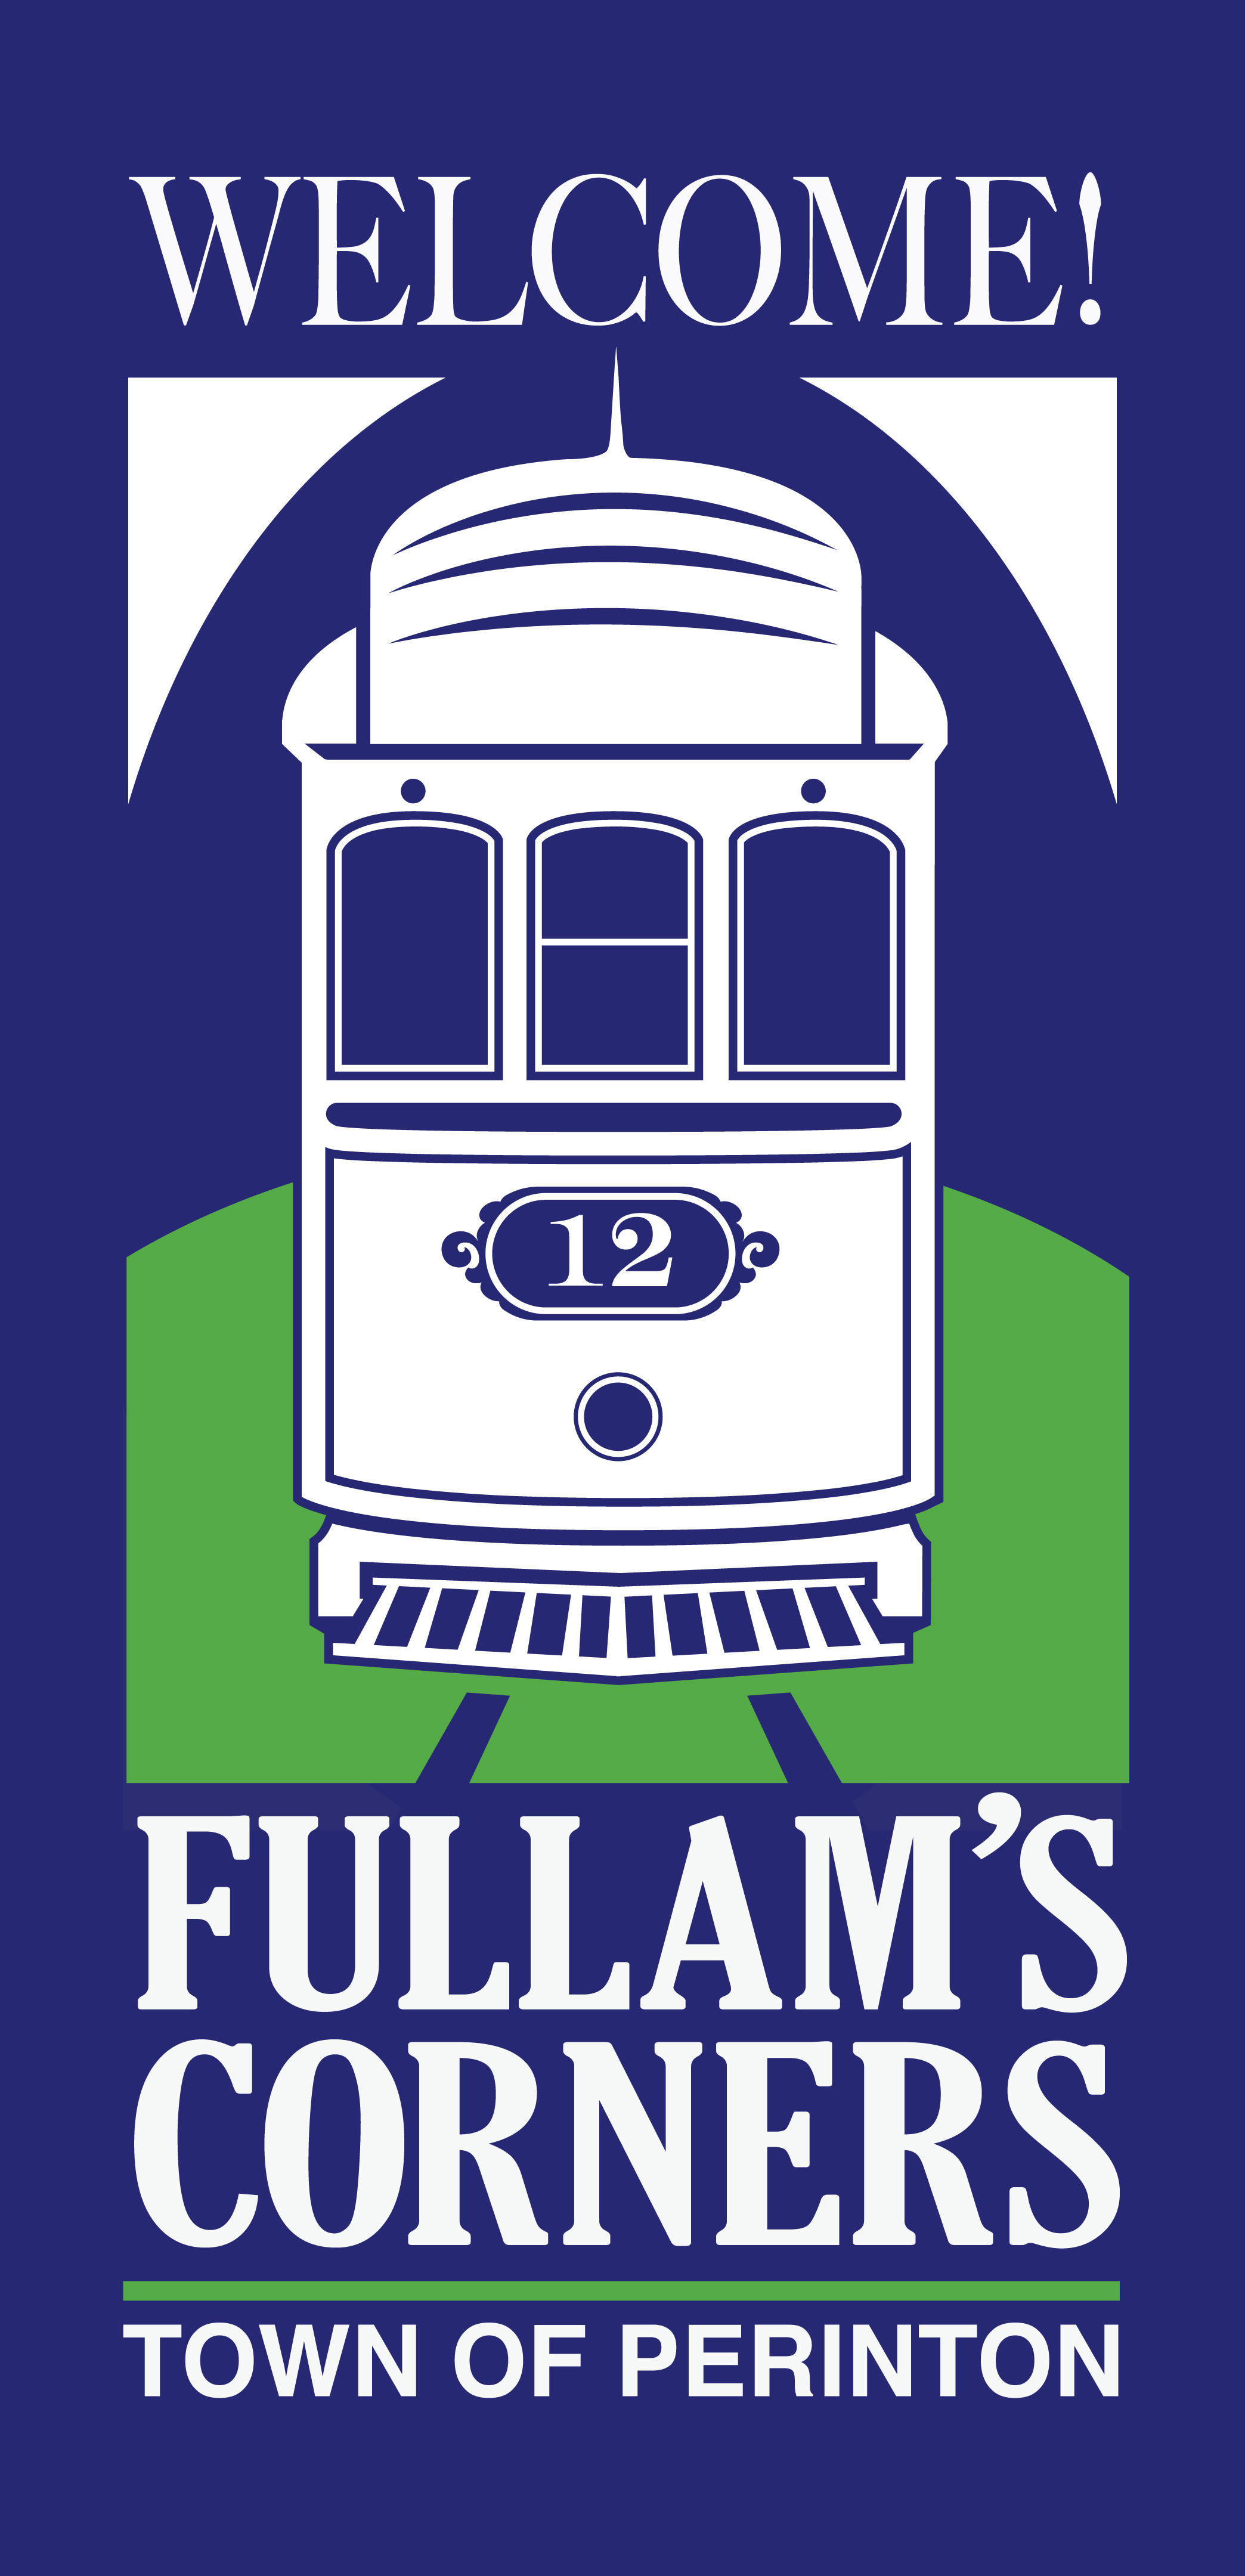 Historical canal basin and trolley stop facts and present-day development come together in the name and logo we created and assigned the business district formed by the newly aligned intersection of Fairport/Jefferson/O'Connor Roads.